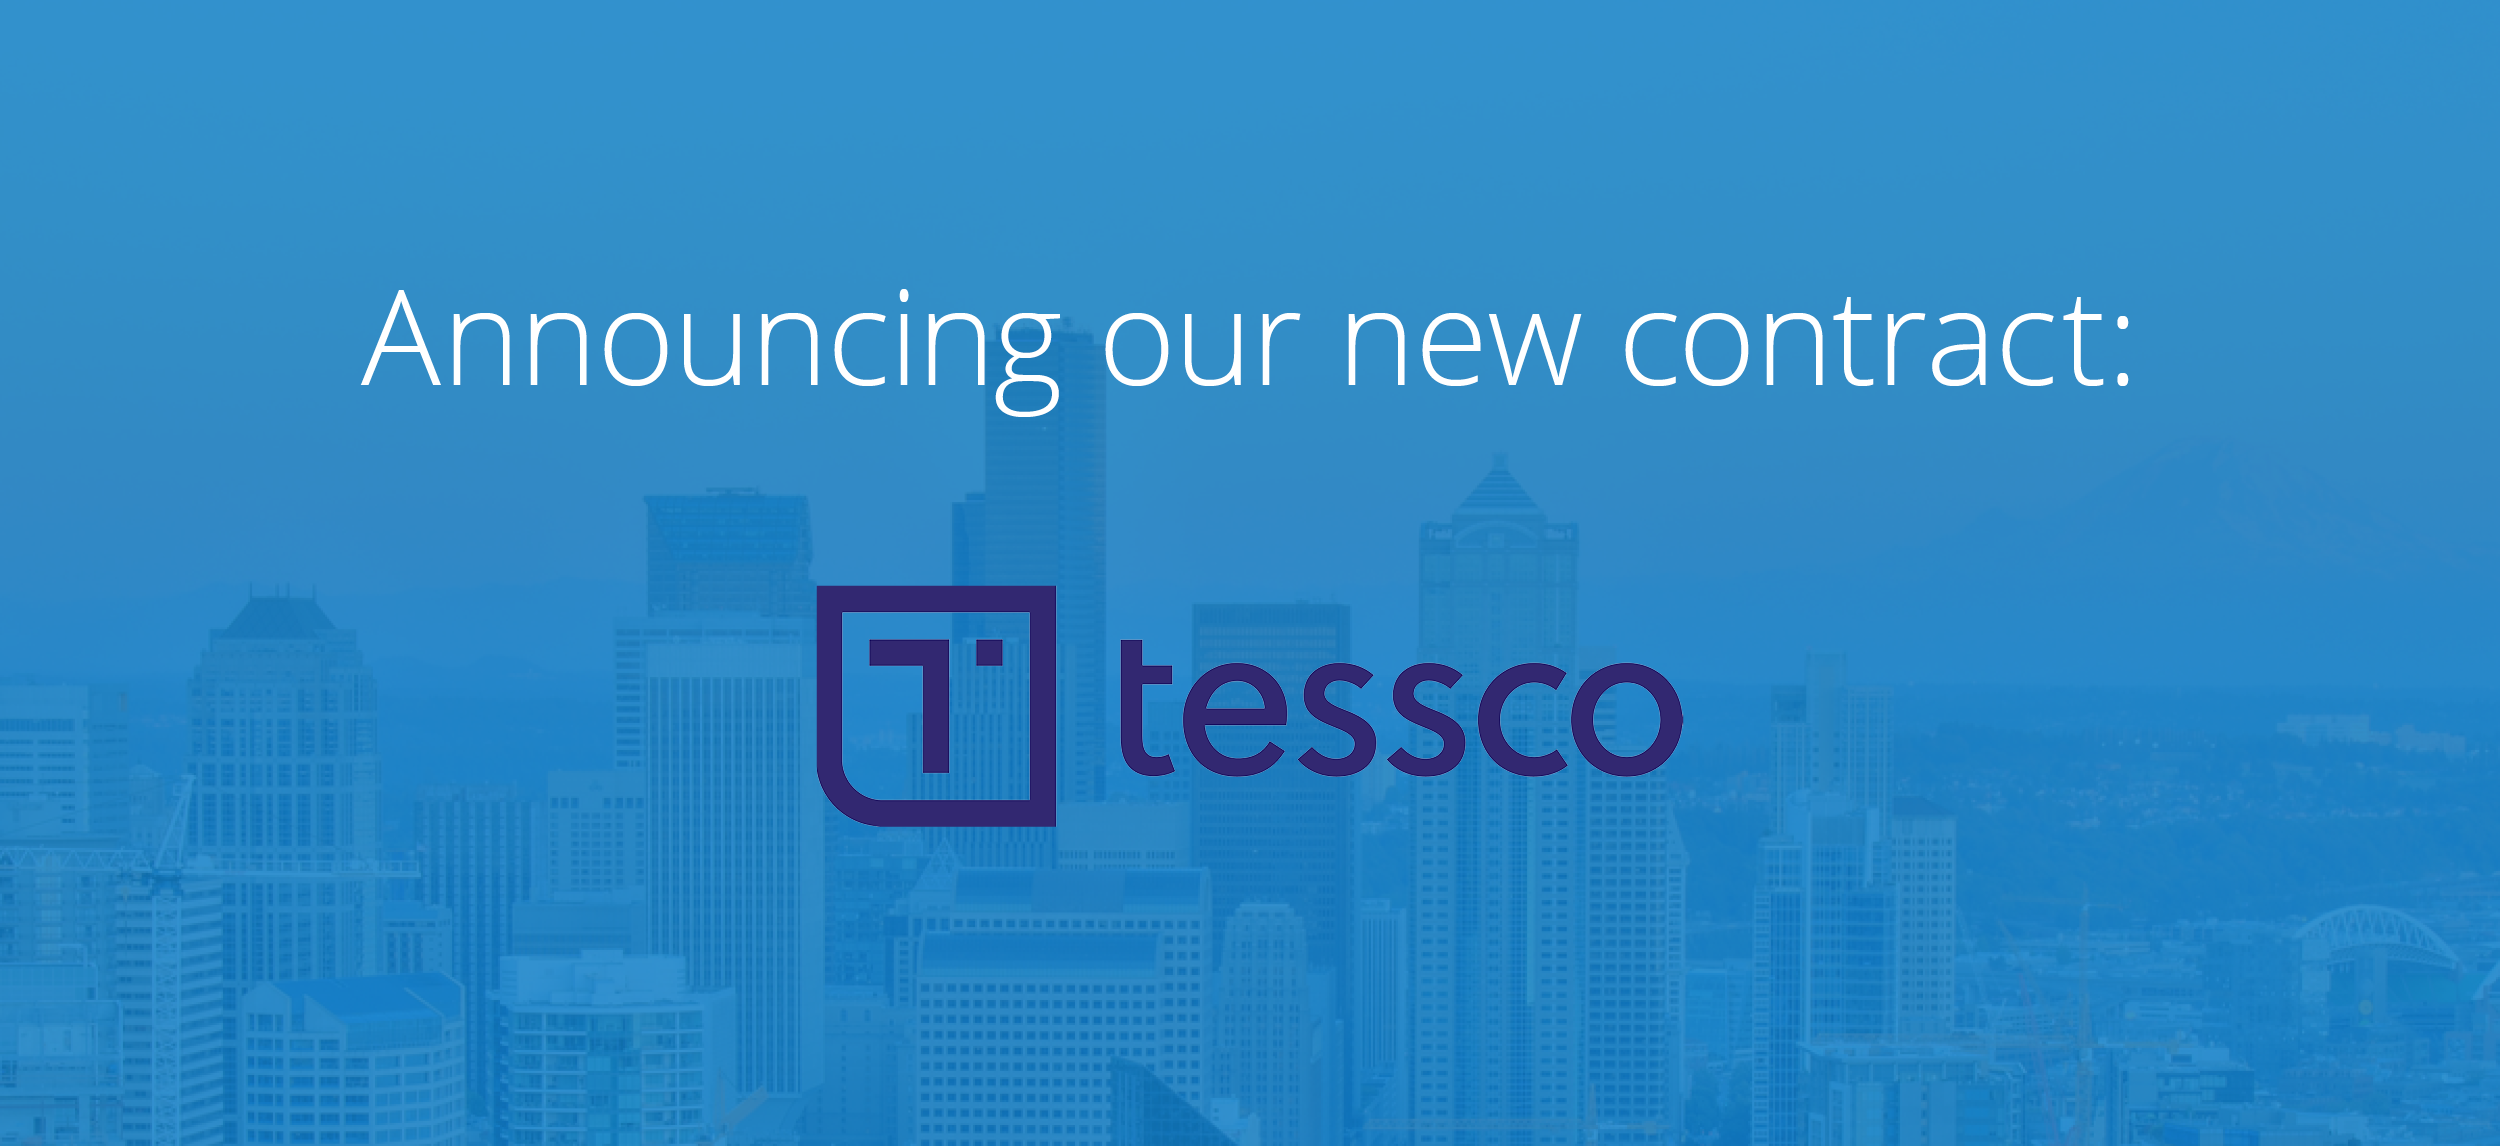 Tessco Incorporated: Our Newest Contract